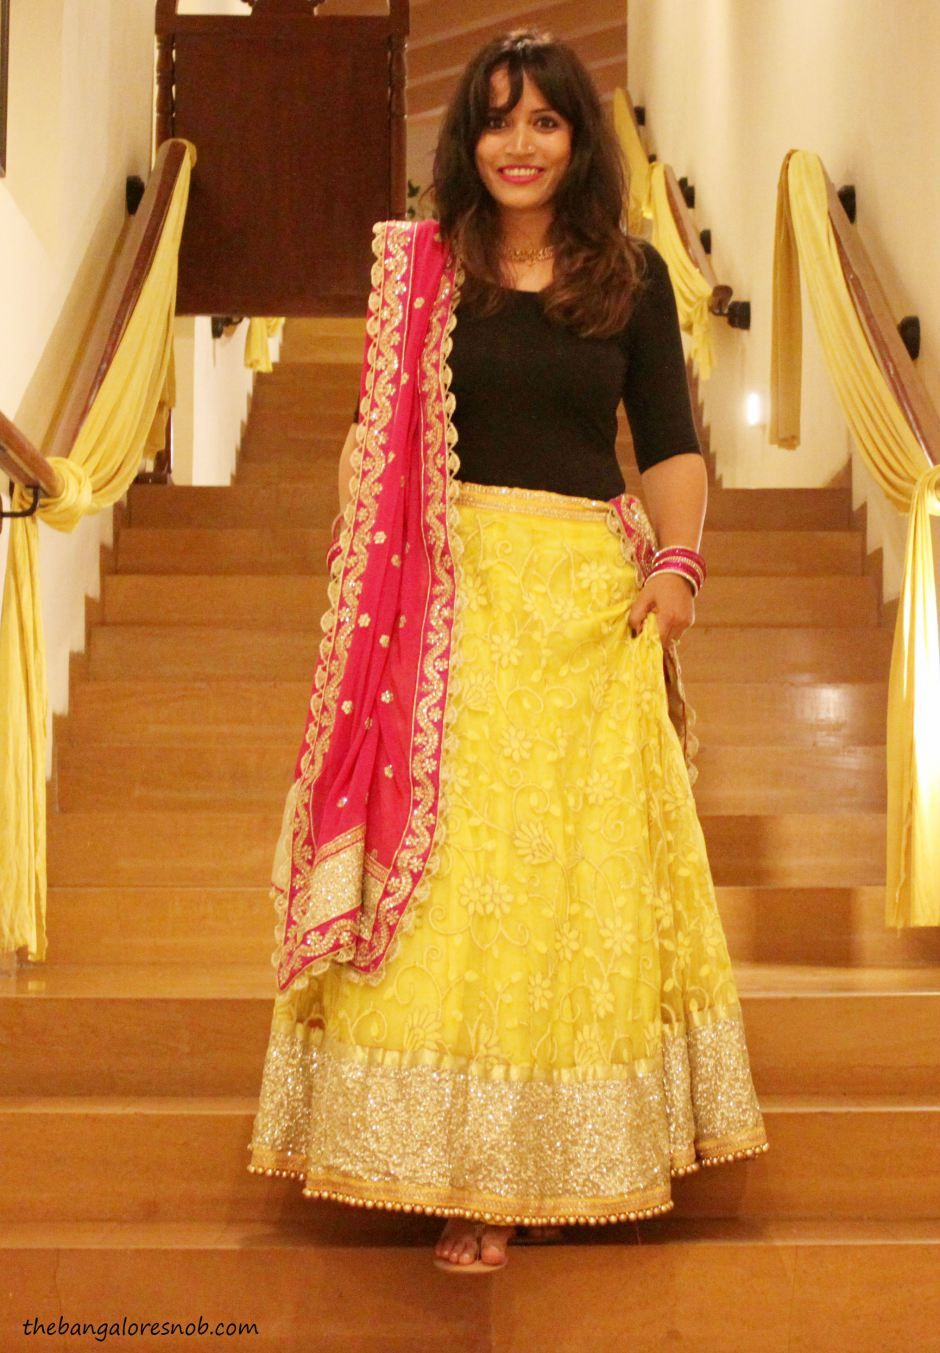 Design your own t shirt bangalore - Indo Western Combination Teamed Up A T Shirt With A Yellow Lehenga And Pink